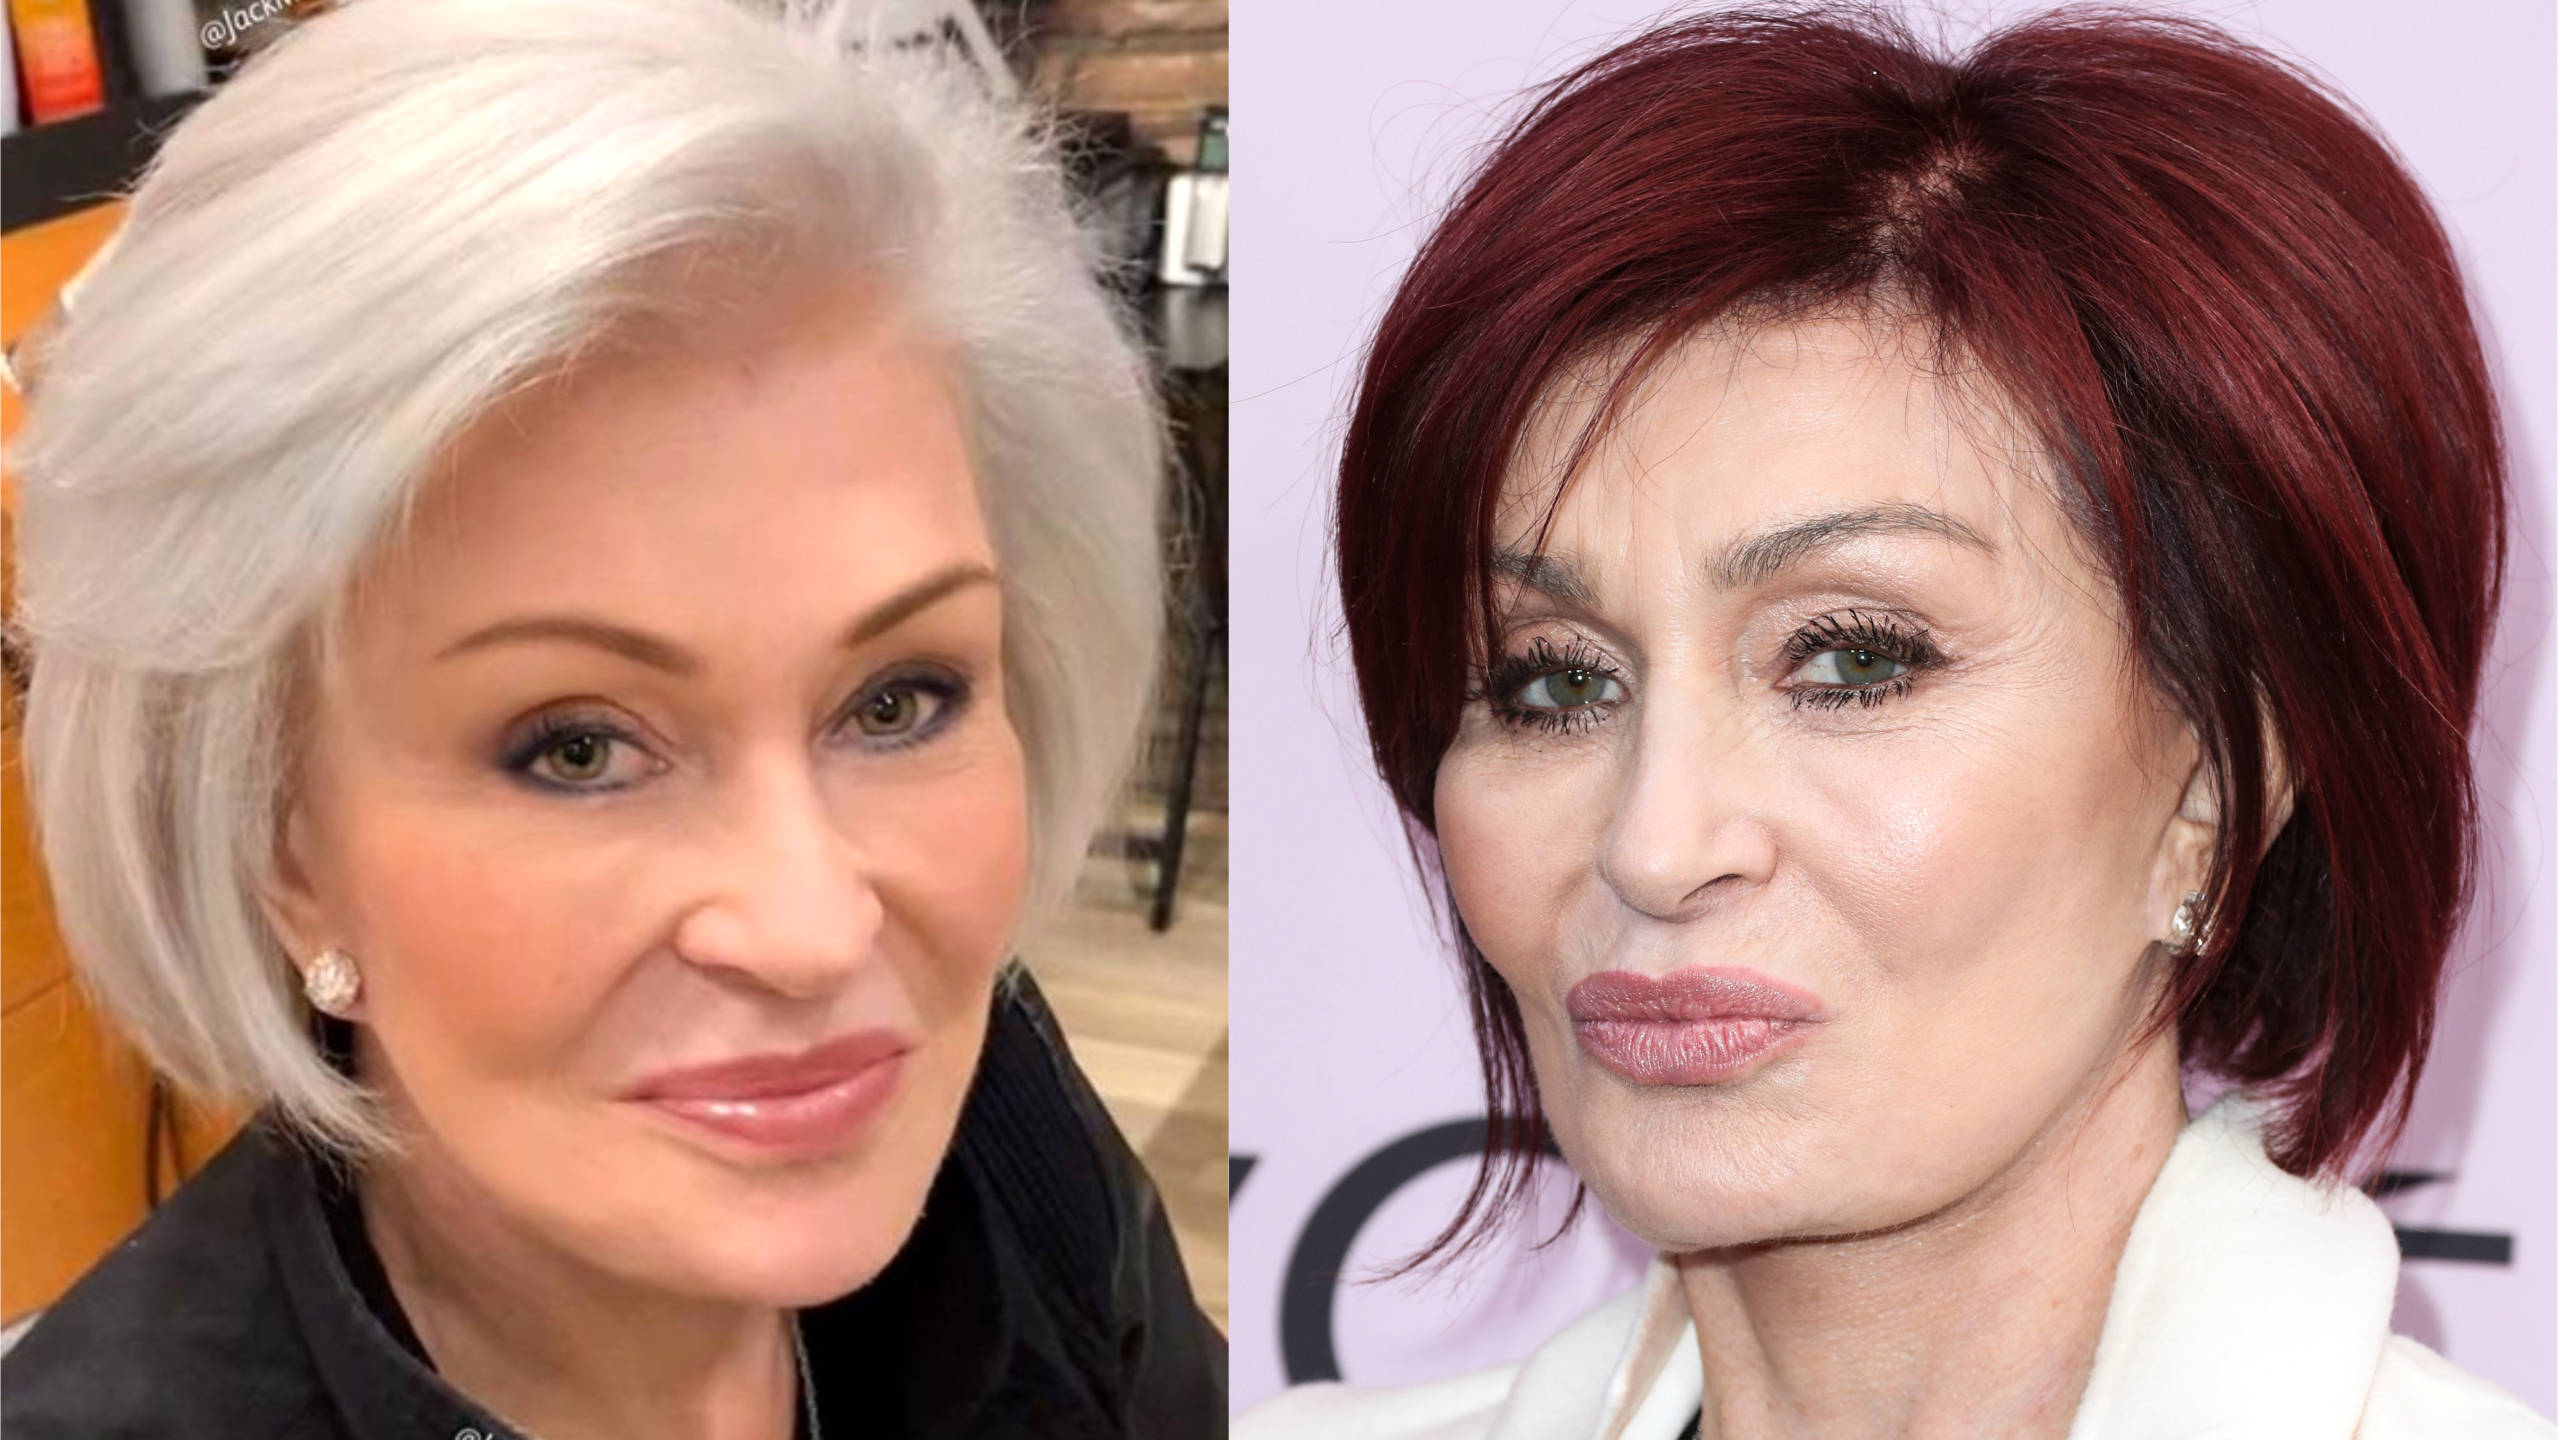 Sharon Osbourne Debuts Radical Hair Colour Change From Red To White After 18 Years Smooth